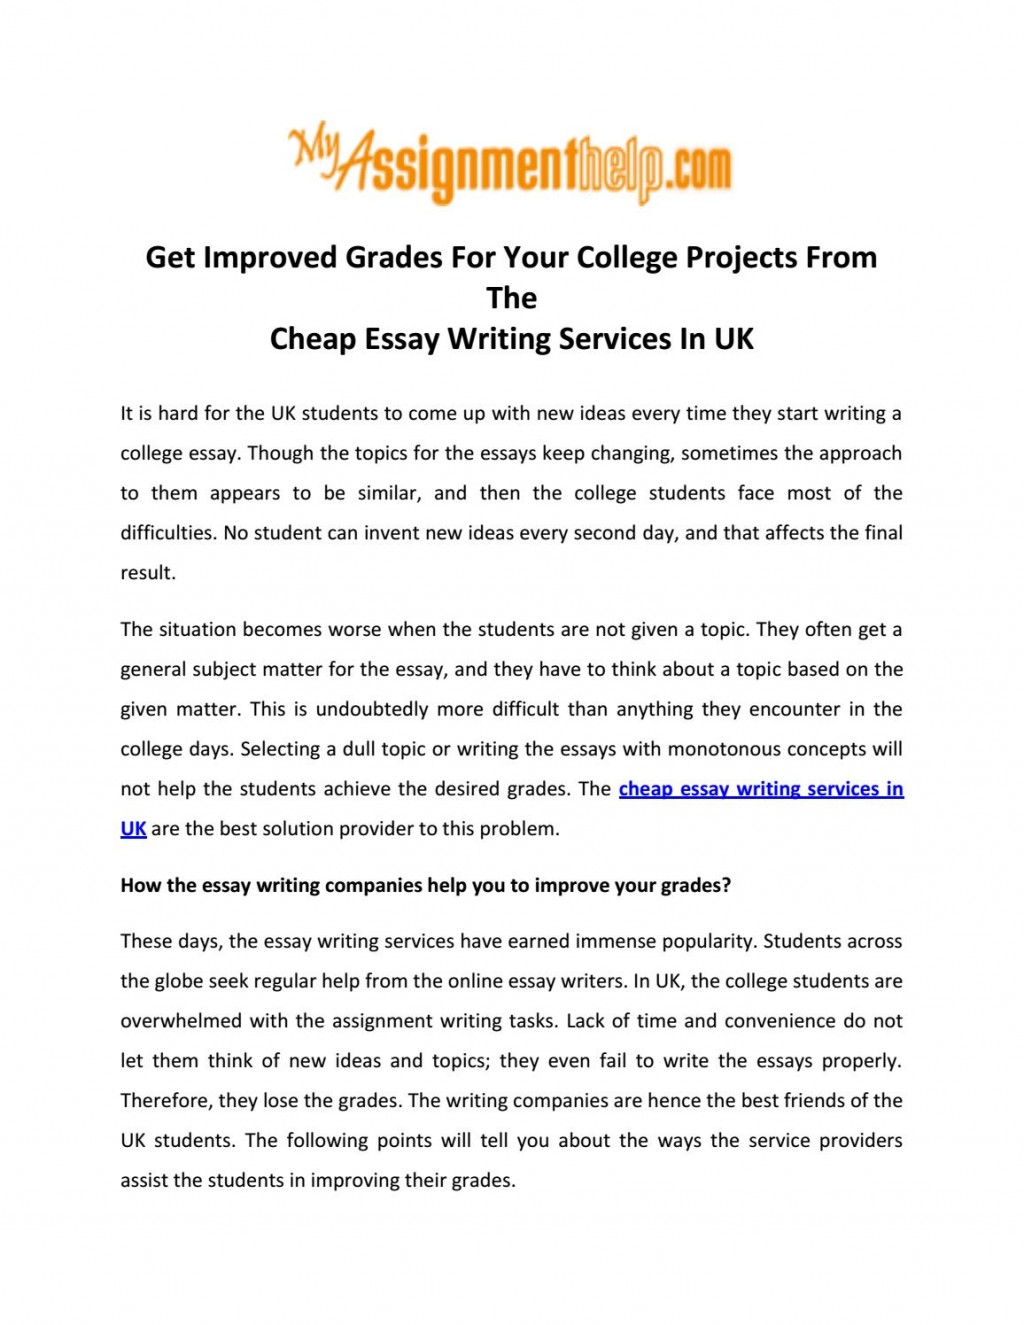 011 Page 1 Essay Example Cheap Writing Unusual Service Reddit Cheapest Review Services Reviews Blog Large